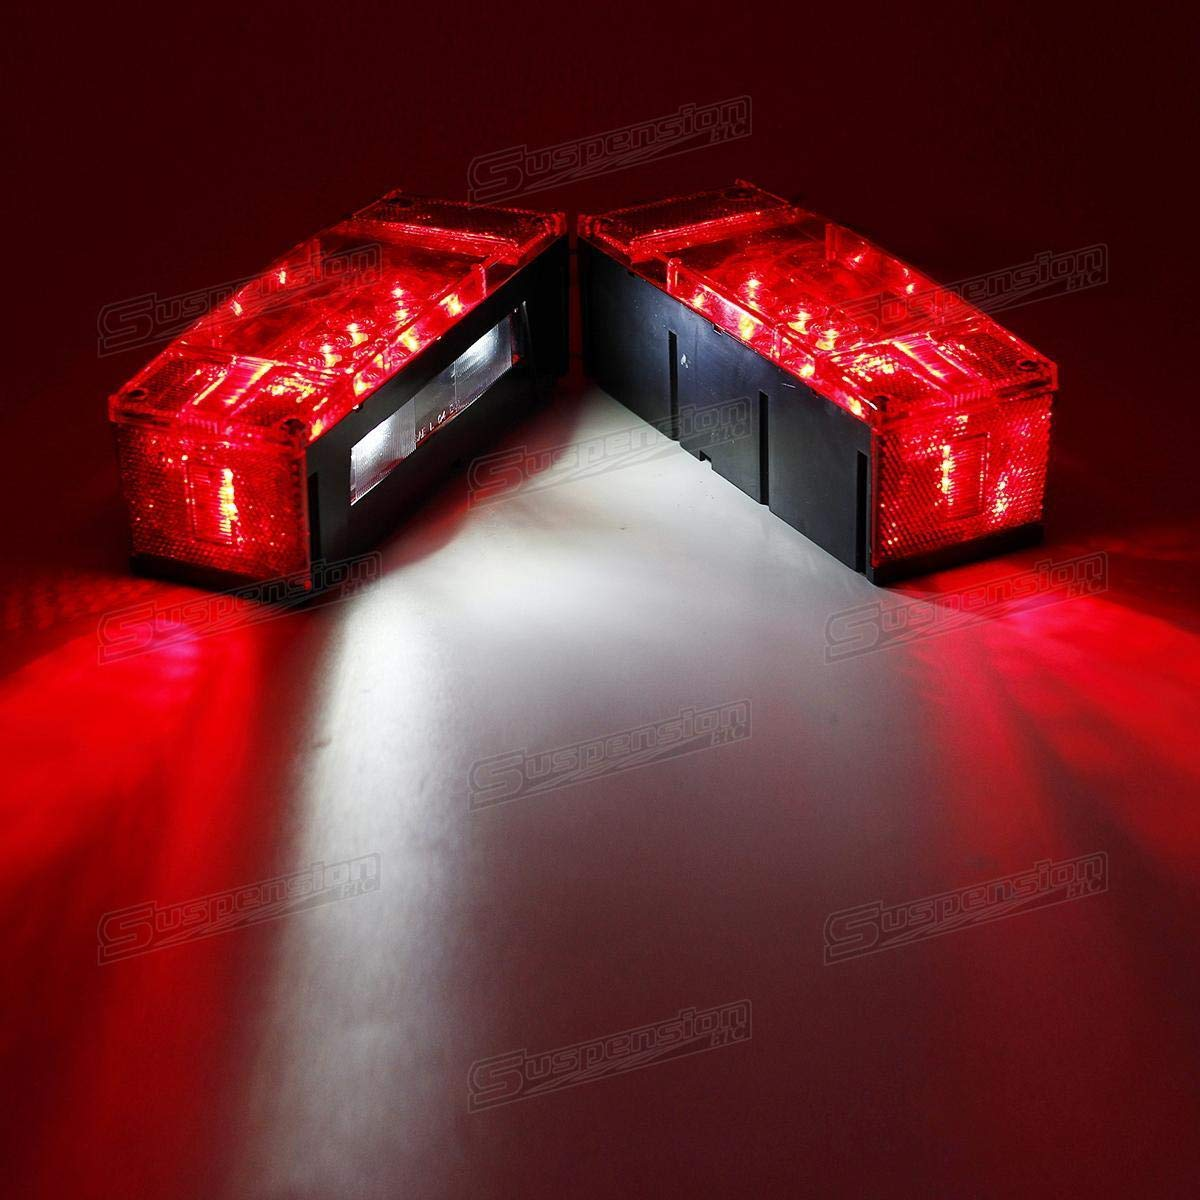 Left+Right LED Waterproof Red Trailer Boat Rectangle Rectangular Low Profile Stop Turn Submersible Light by prolineppi